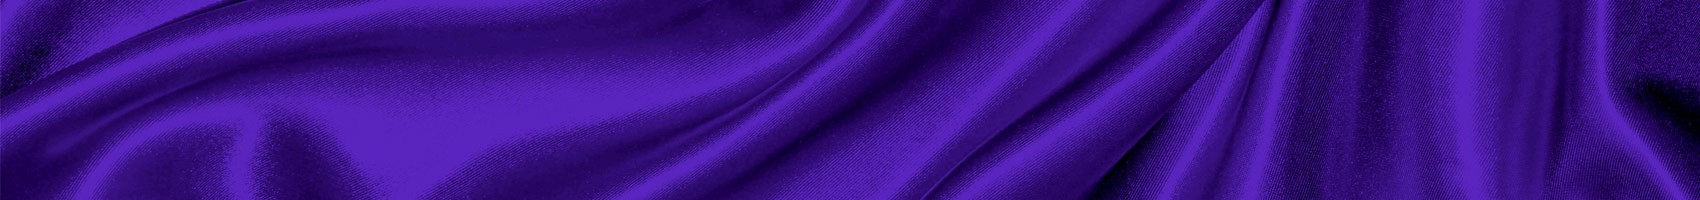 BBE-Satin-purple-bg-1700x200